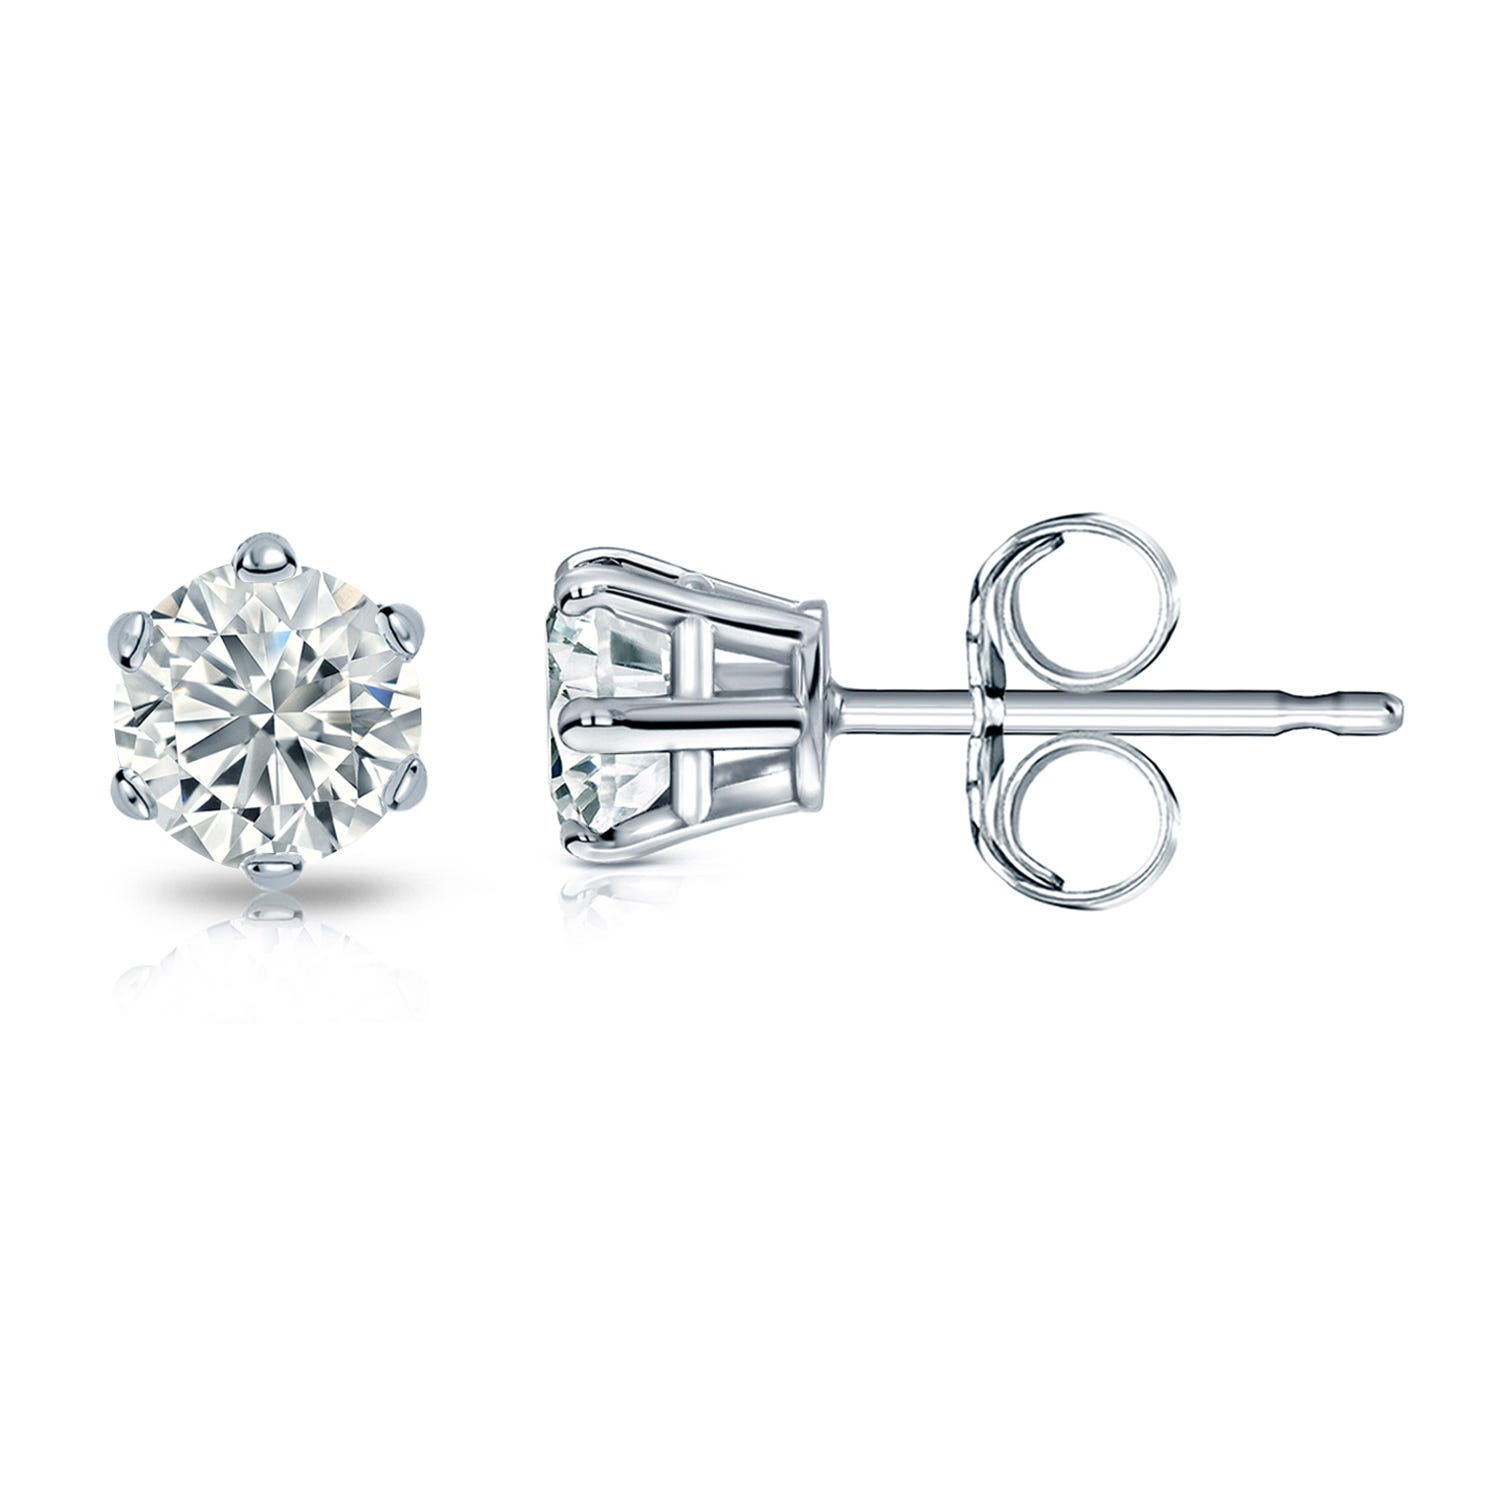 Round Diamond 5/8ctw. (IJ-I2) Solitaire Stud 6-Prong Earrings in 10K White Gold